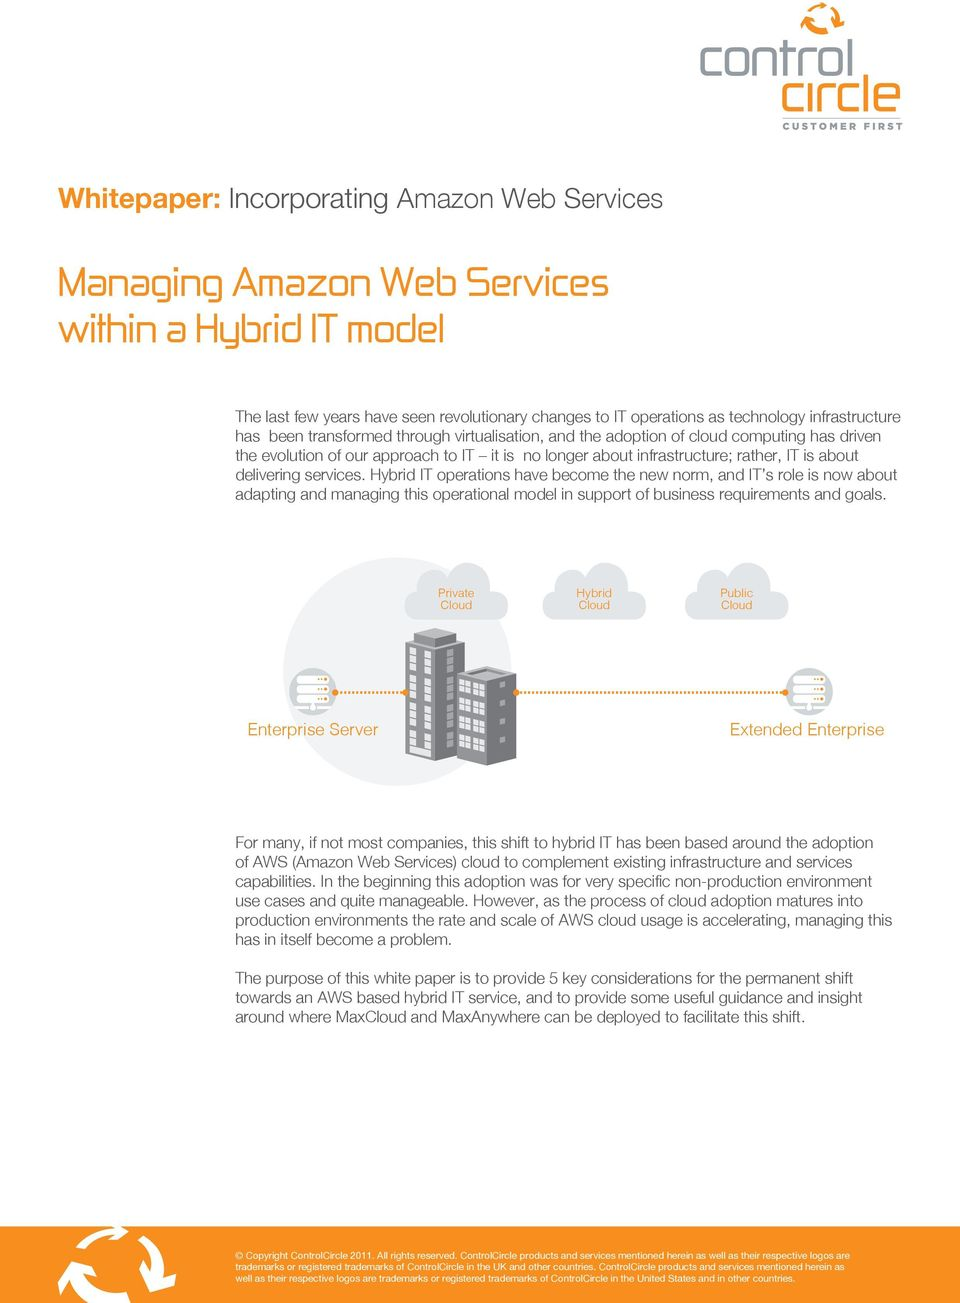 Hybrid IT operations have become the new norm, and IT s role is now about adapting and managing this operational model in support of business requirements and goals.